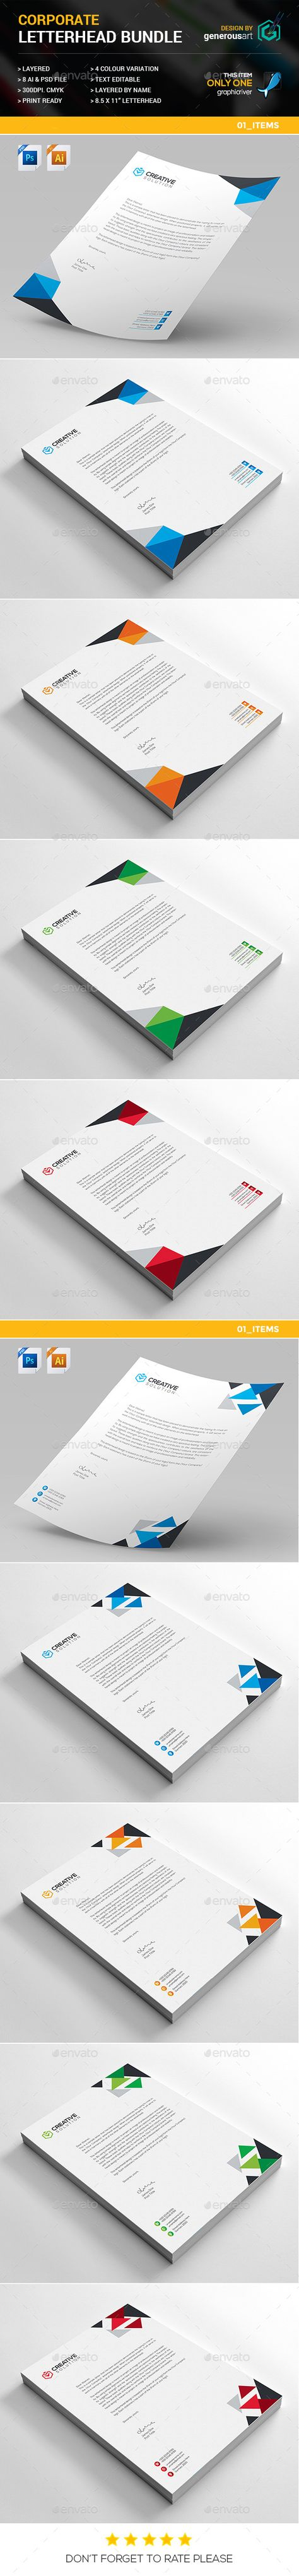 Letterhead bundle print stationery and template spiritdancerdesigns